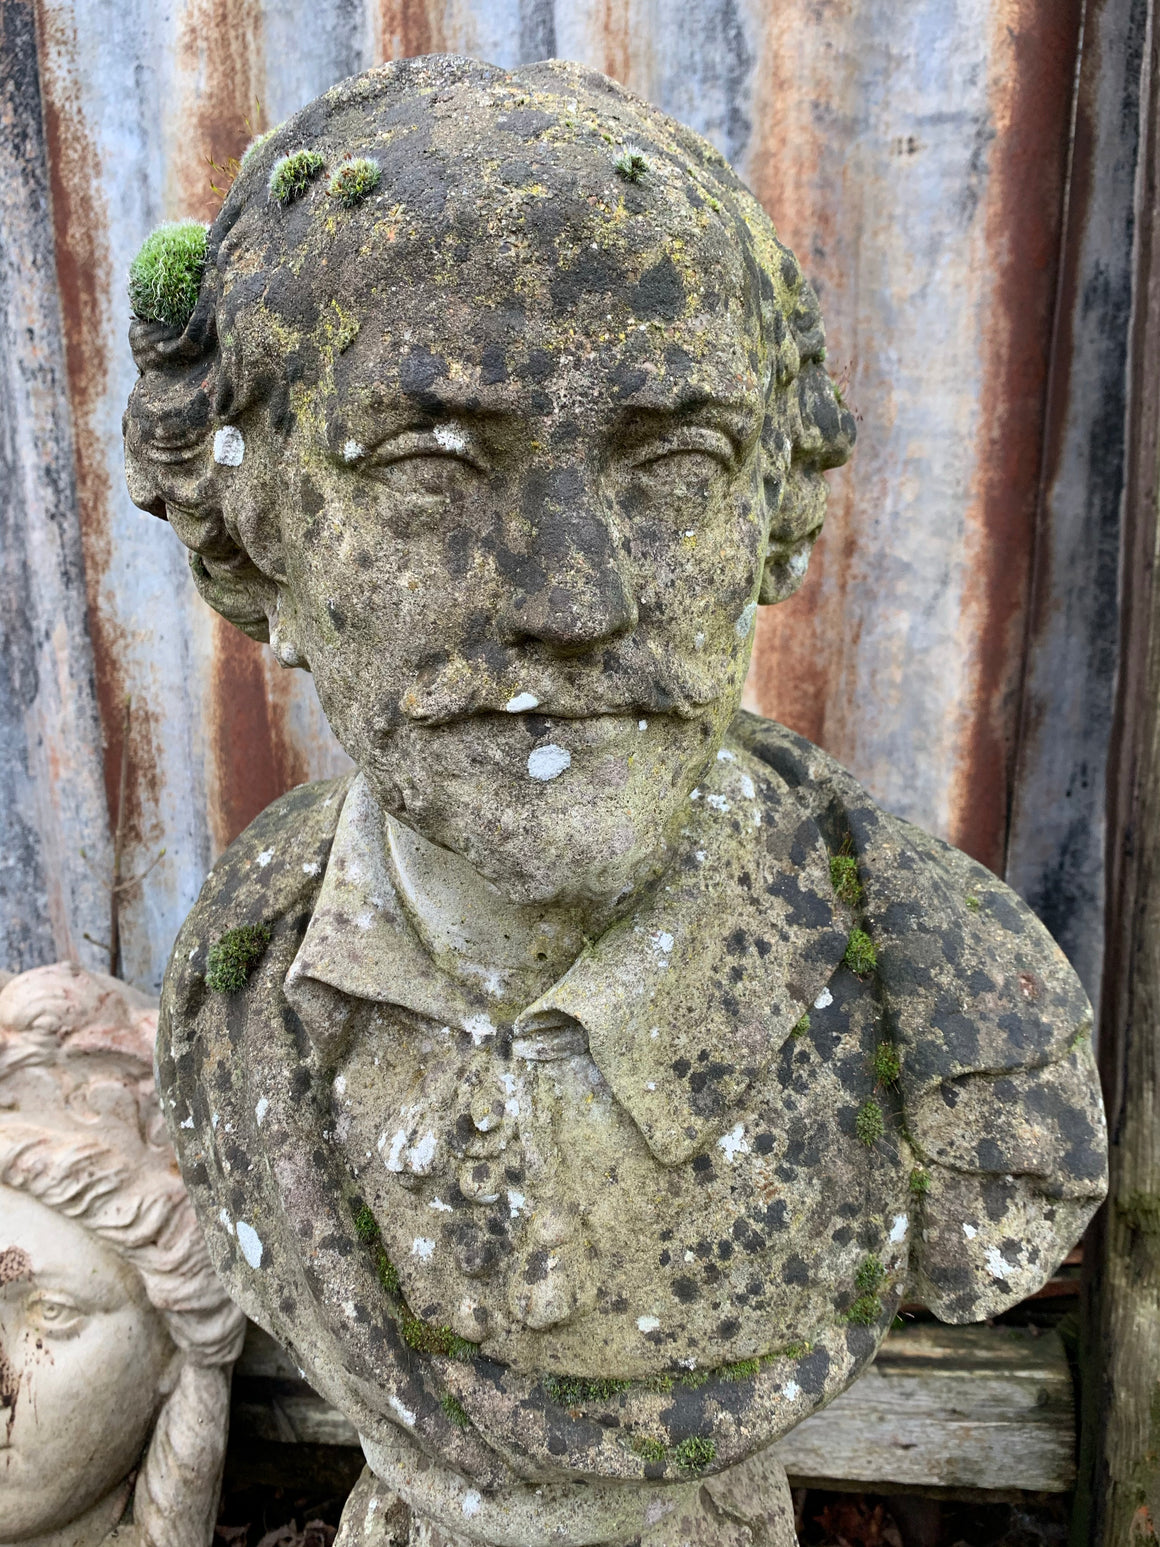 A weathered cast stone bust of Shakespeare on a pedestal column